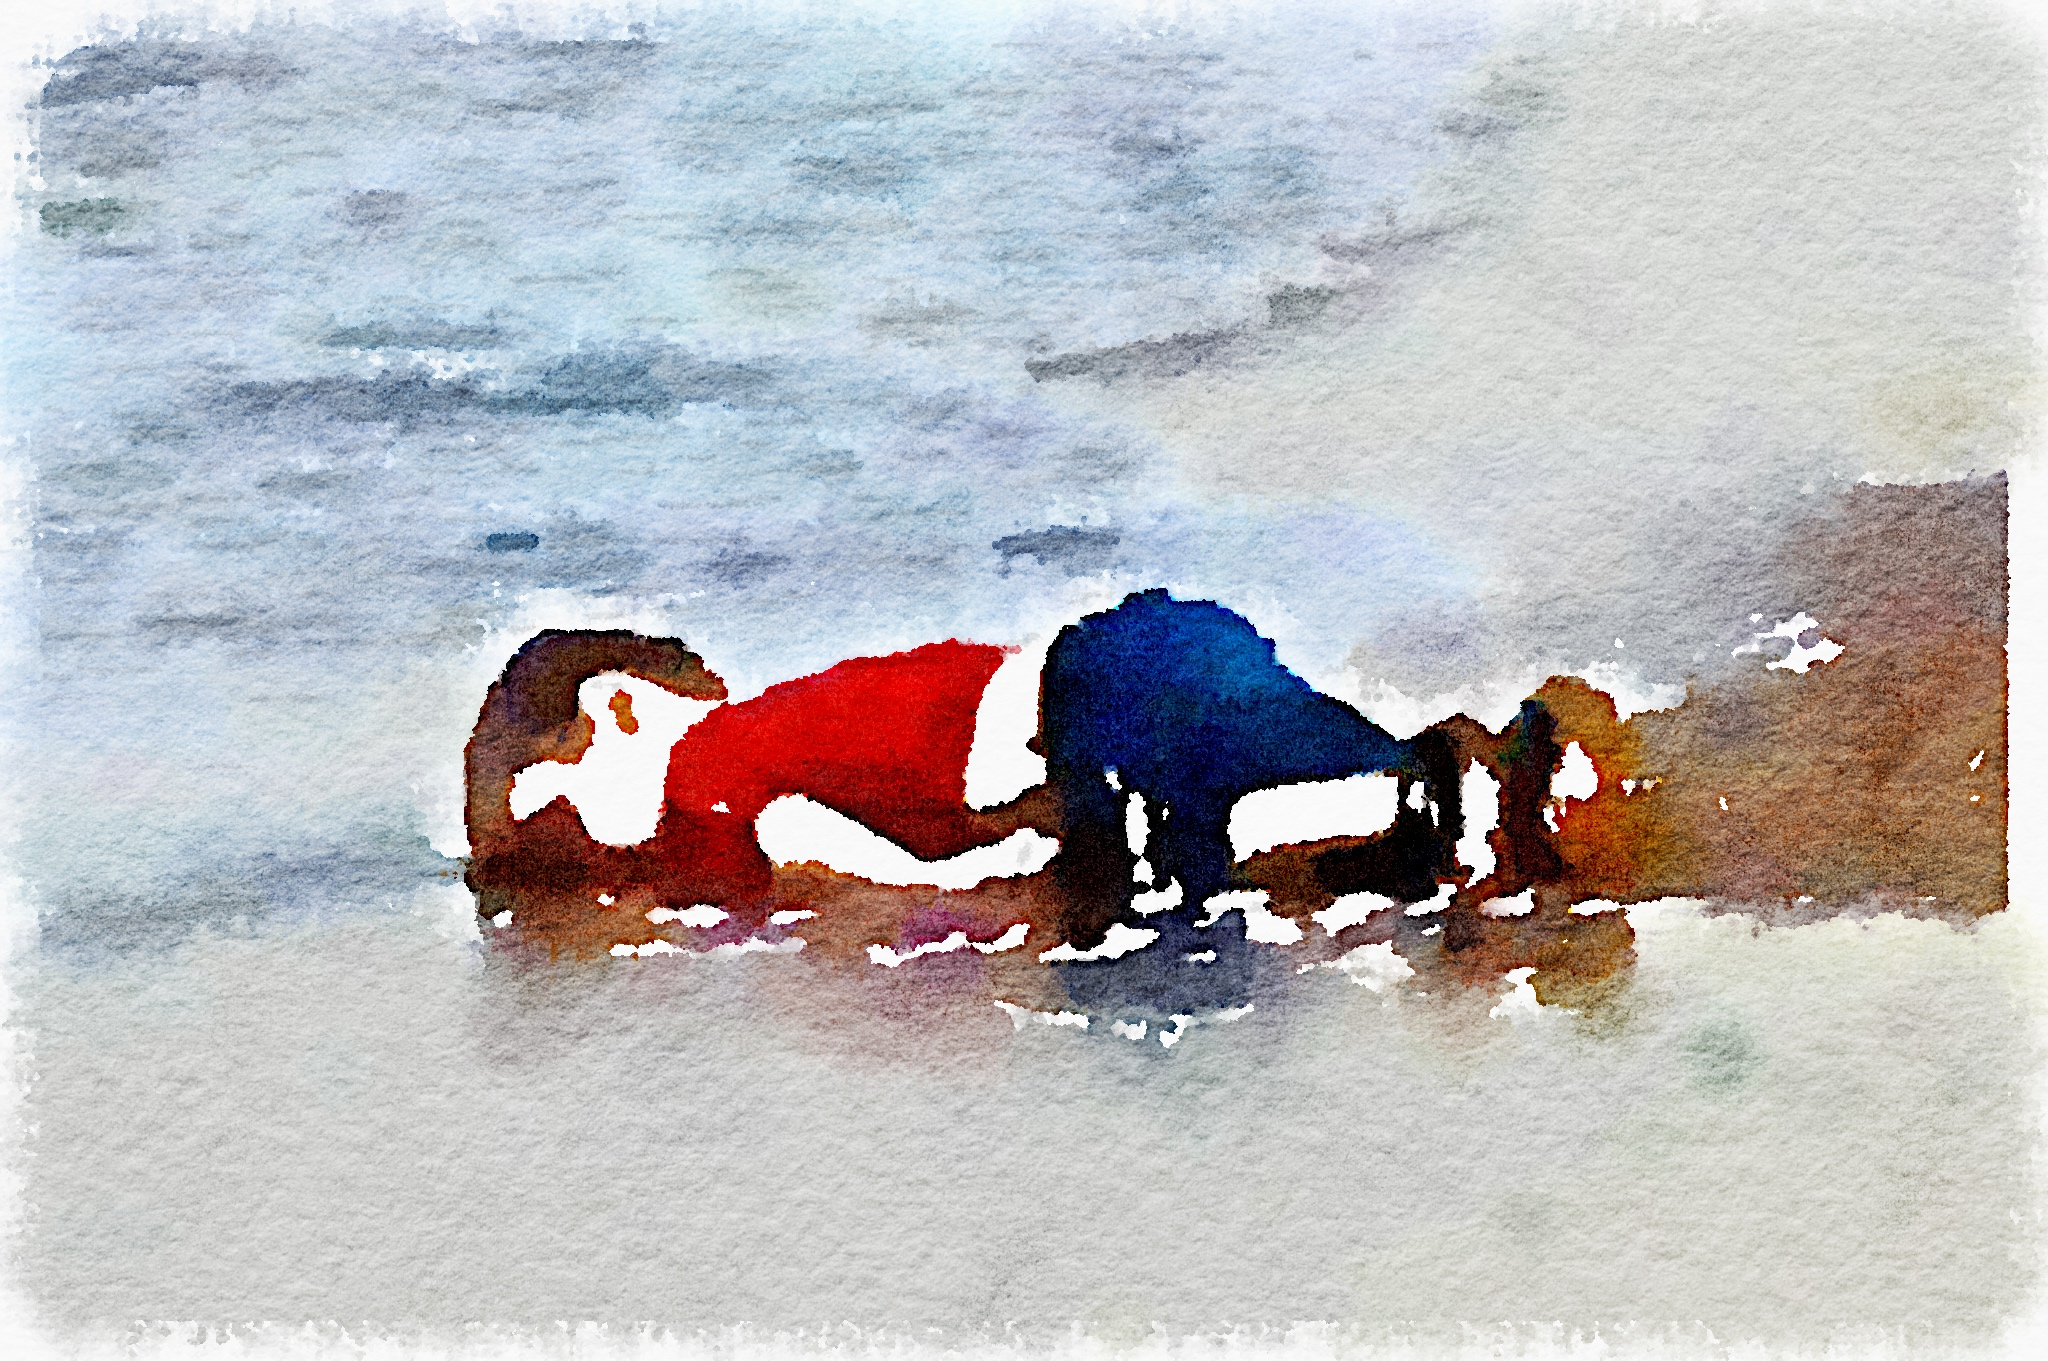 Aylan Kurdi on the beach